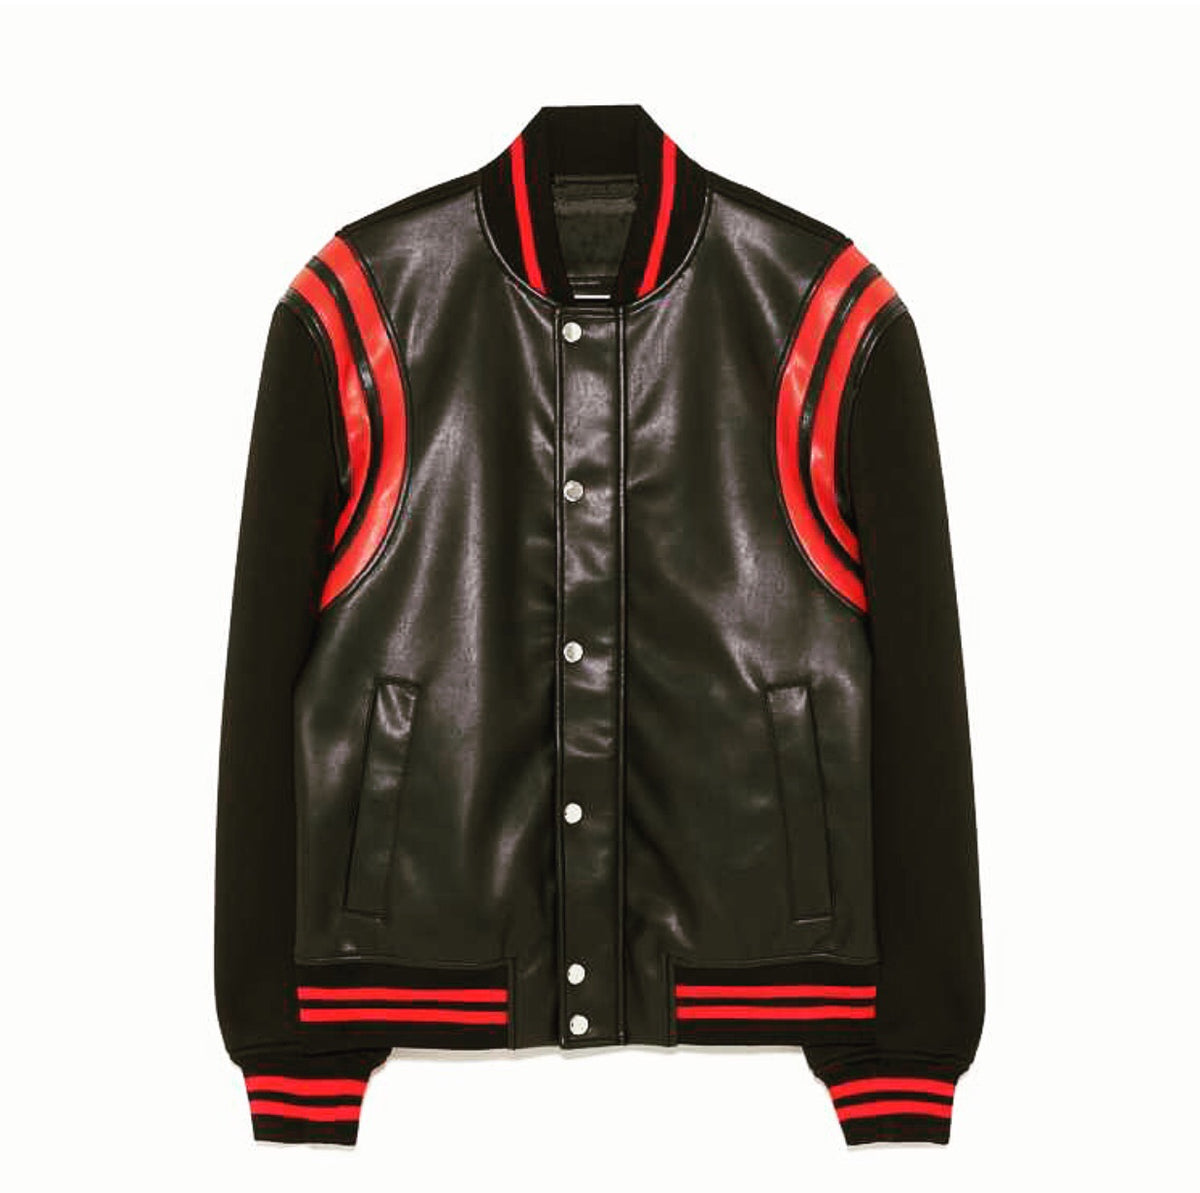 VARSITY LEATHER JACKET